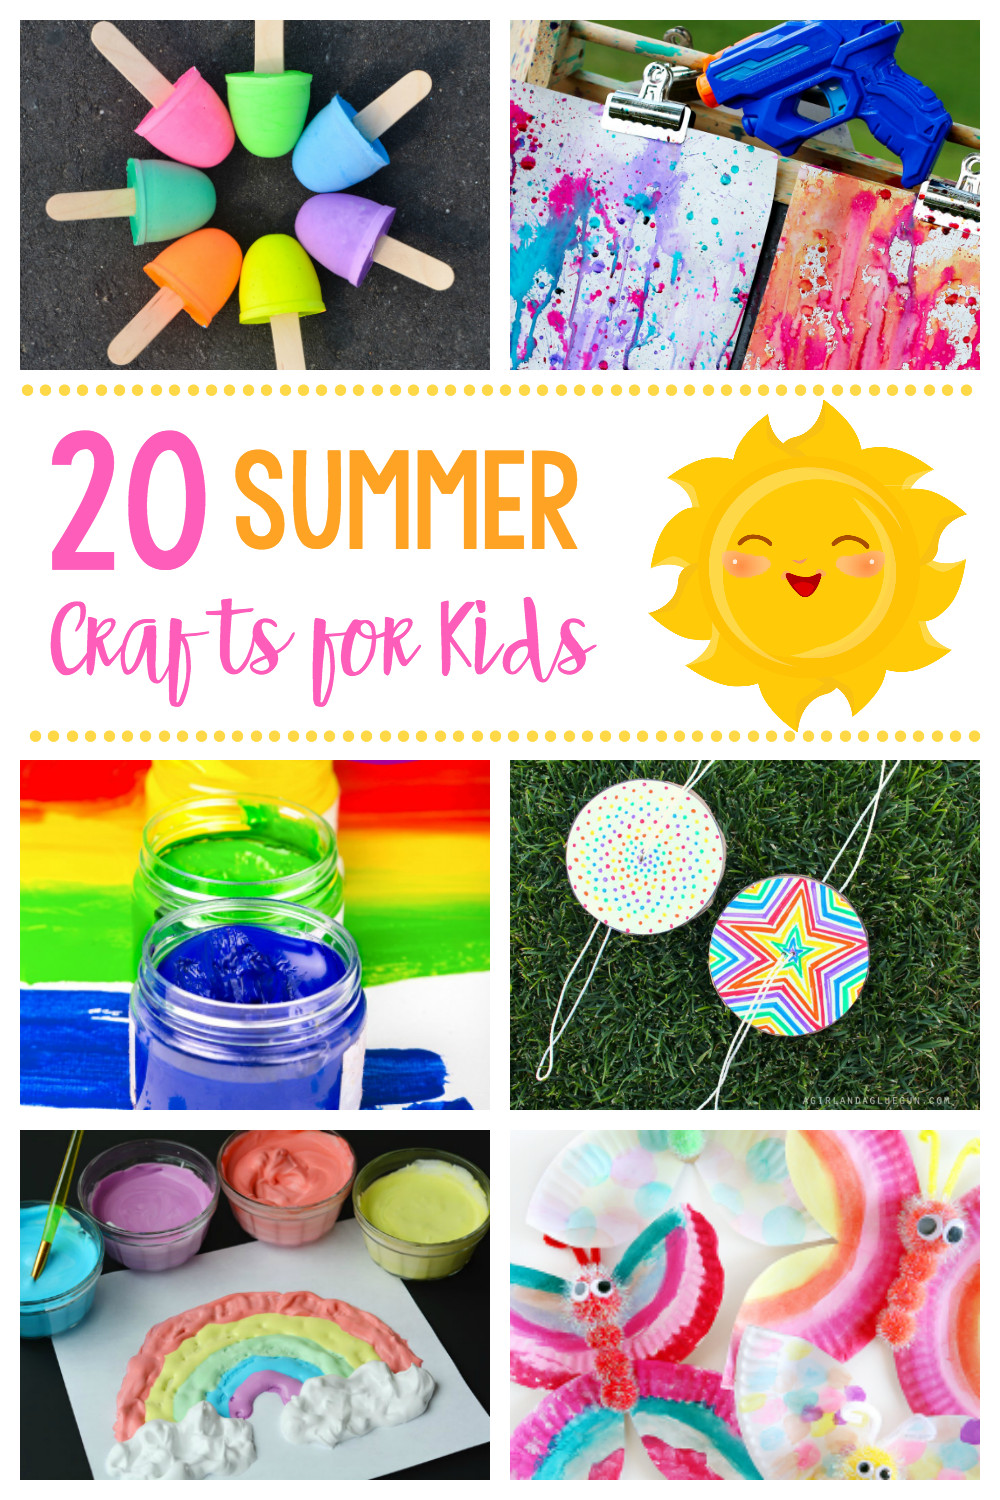 Best ideas about Simple Crafts For Kids . Save or Pin 20 Simple & Fun Summer Crafts for Kids Now.